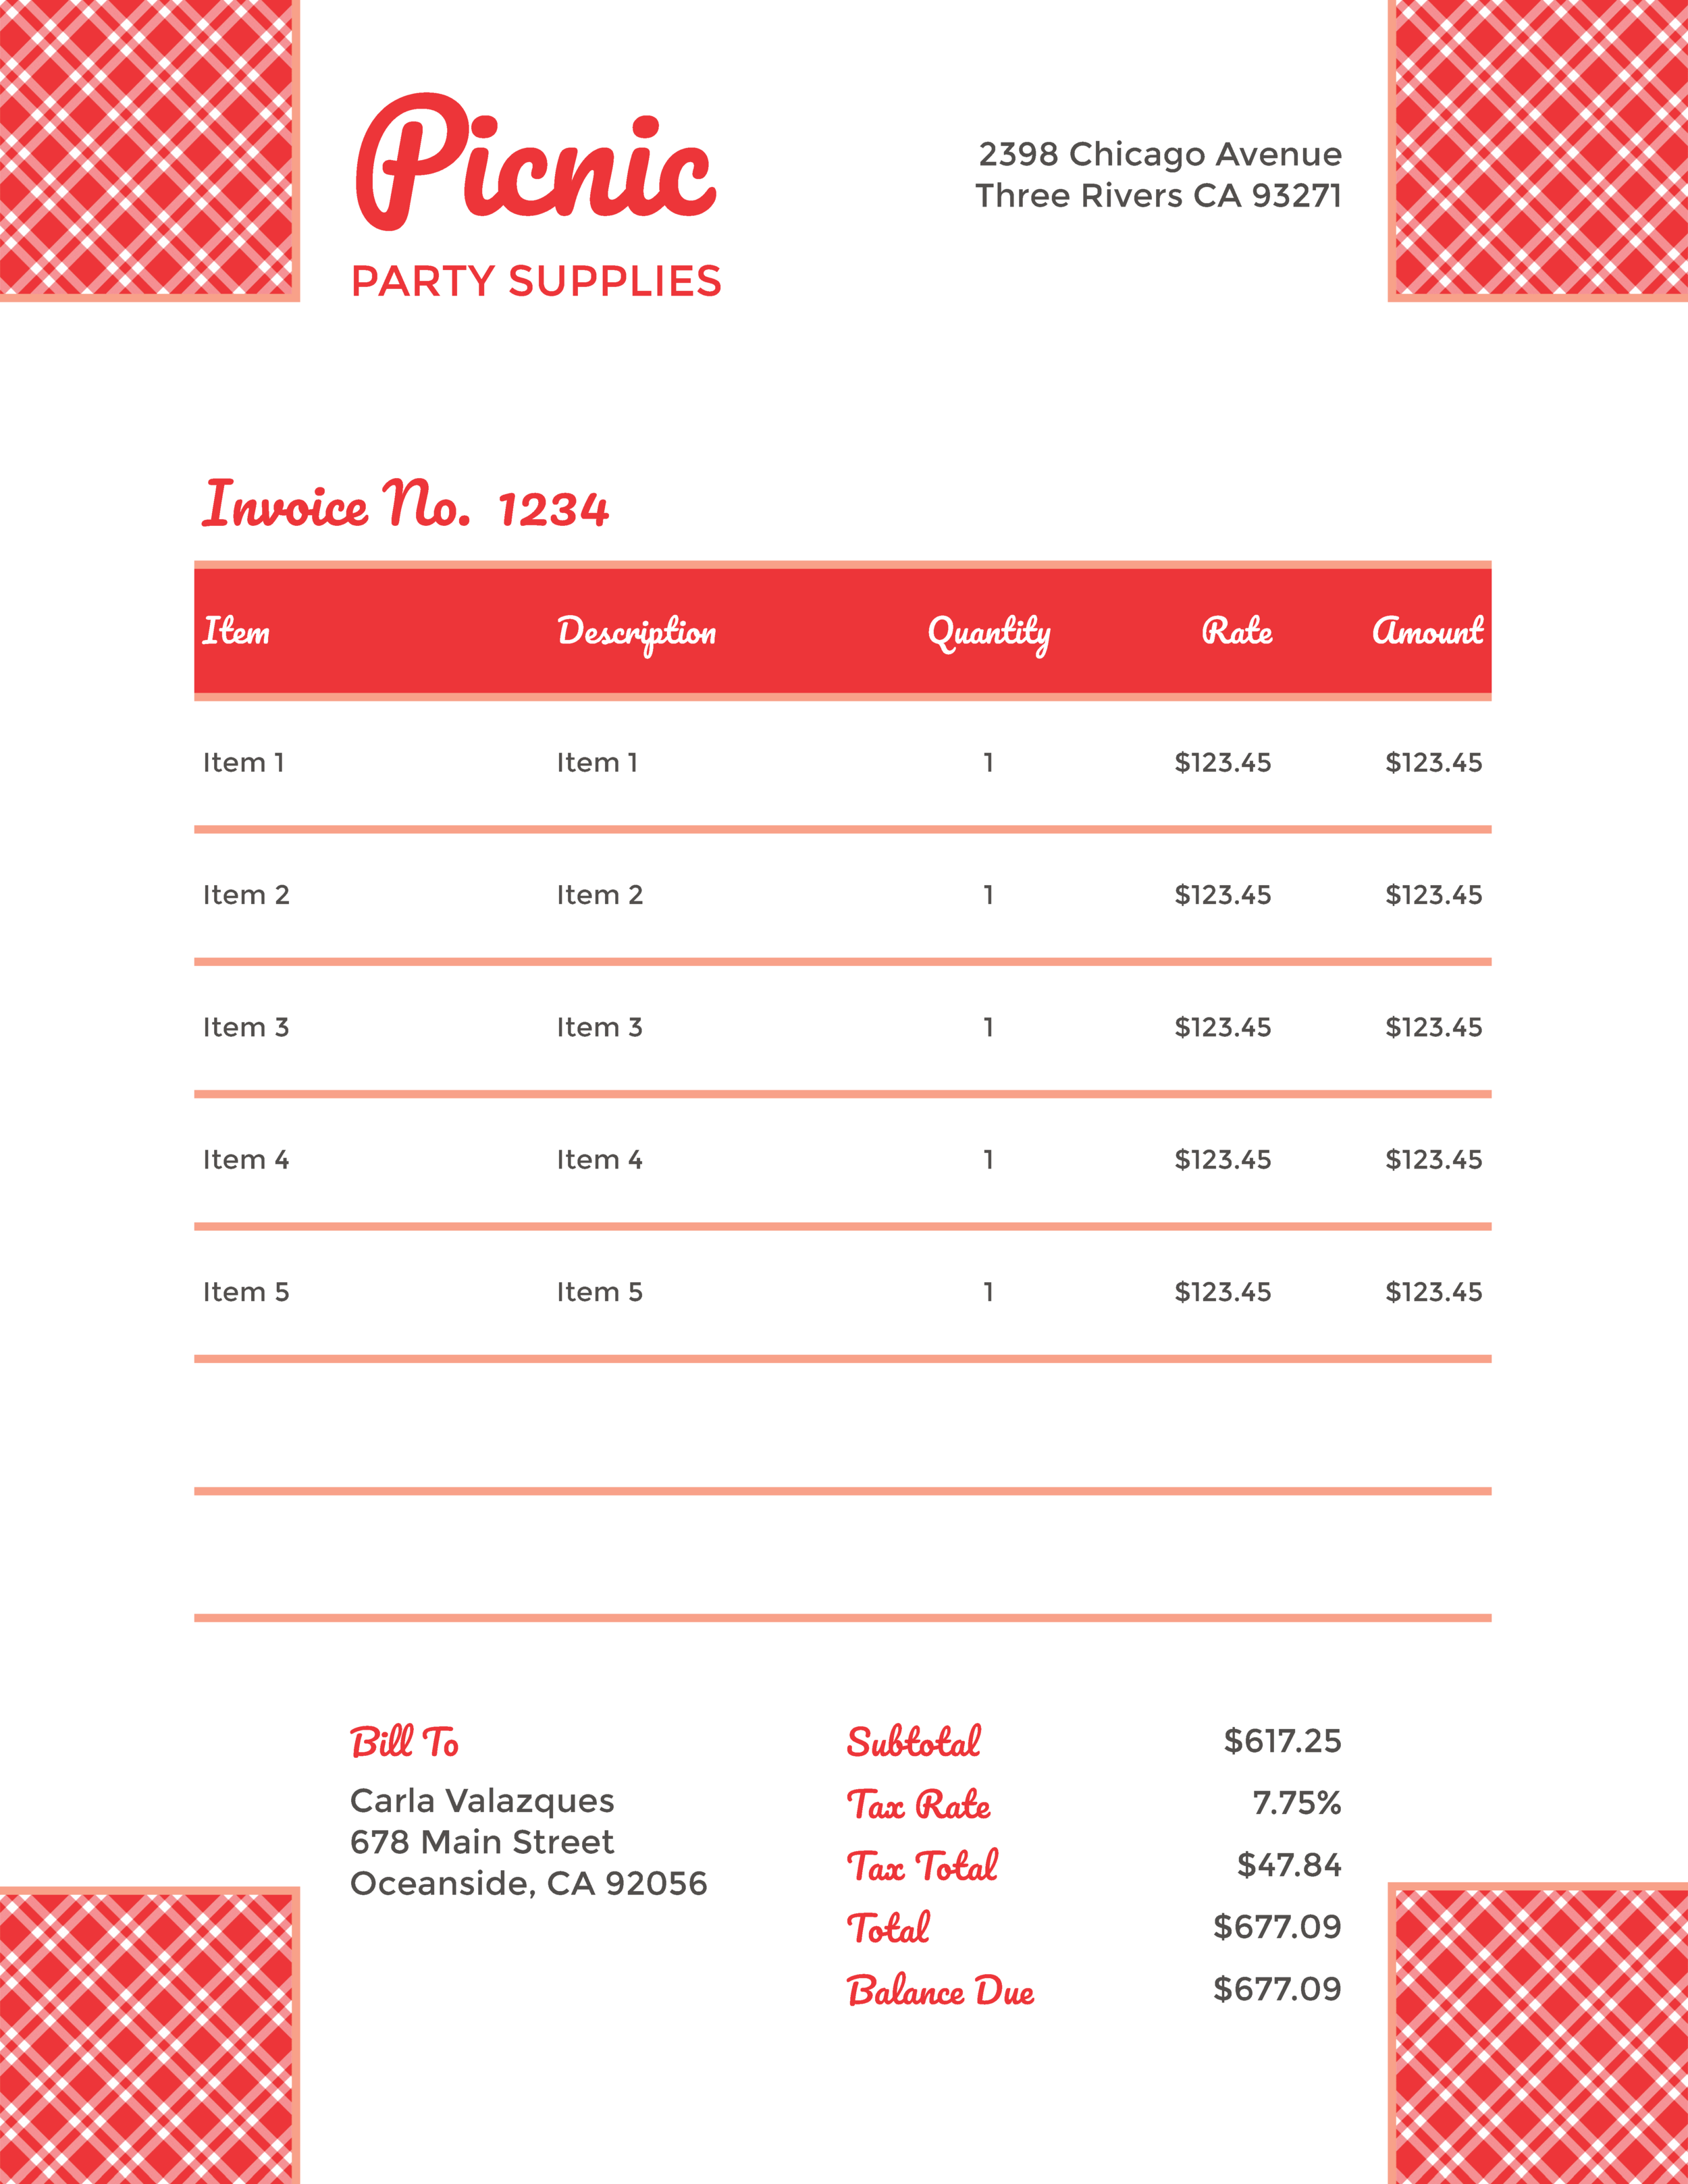 """Picnic Party Supplies"" Invoice Template from formfarm.ioe"